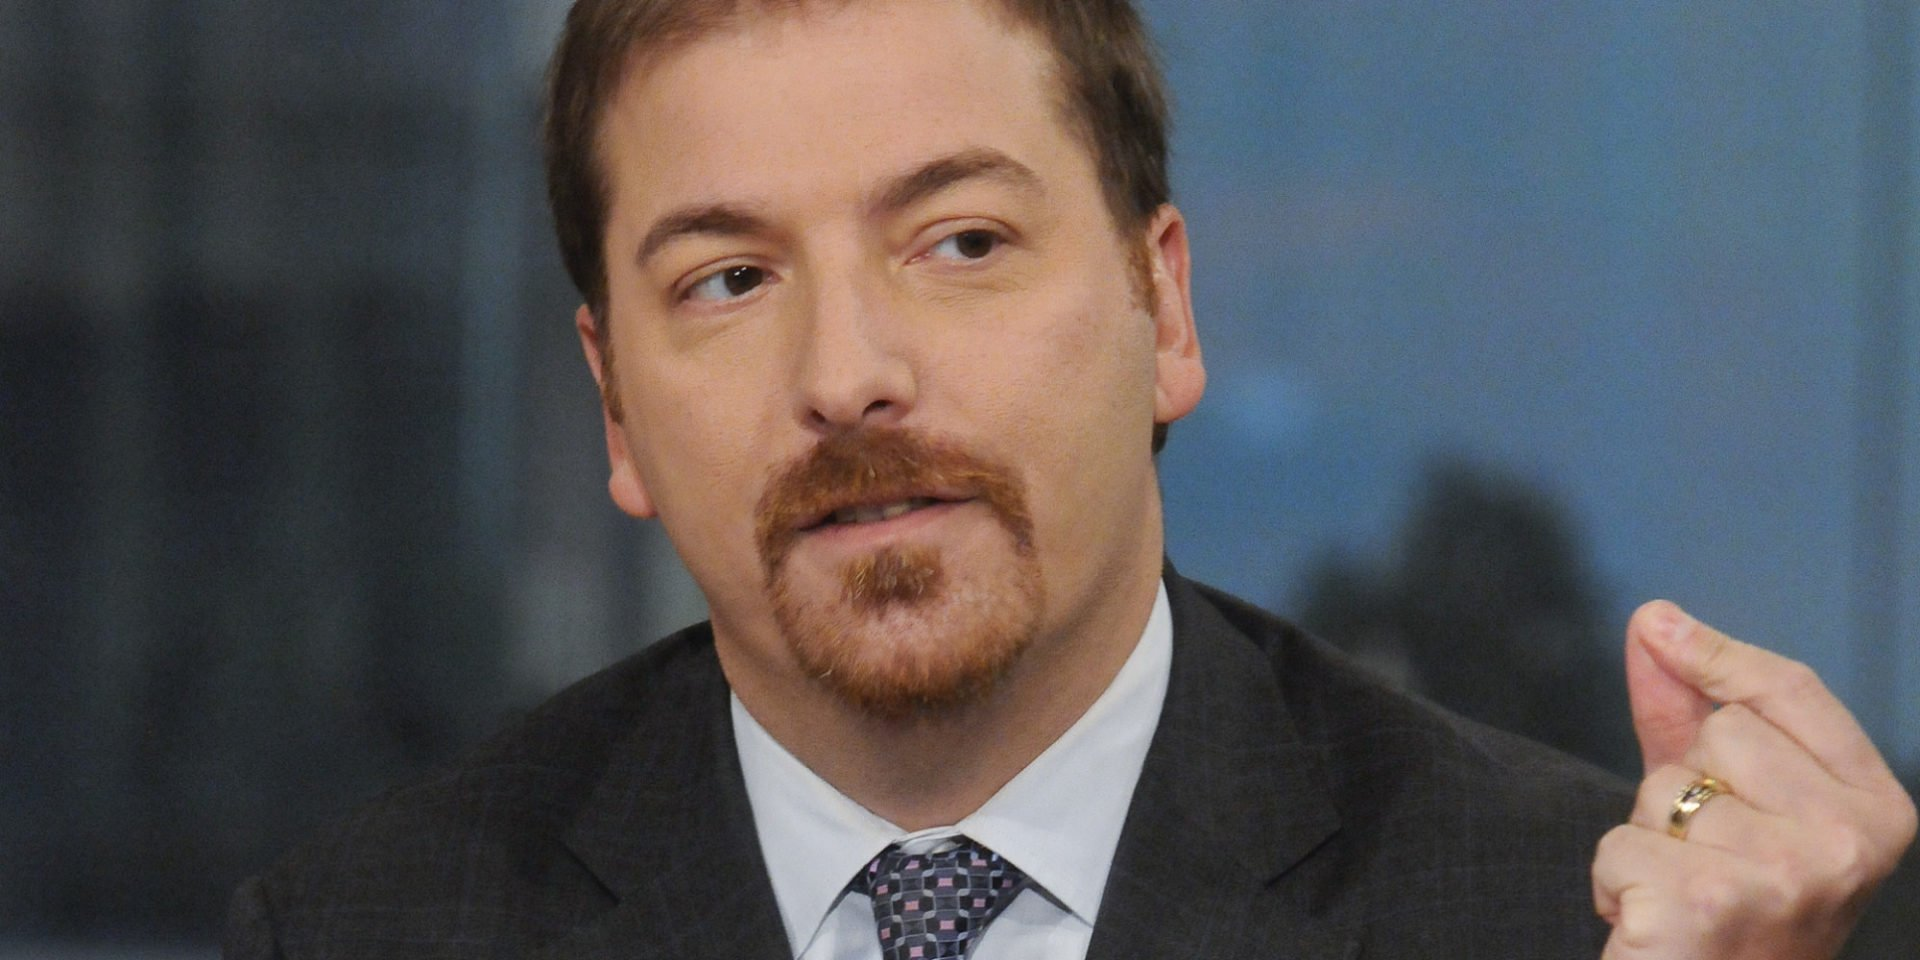 In an appearance on NBC'sSunday Todayearly that morning, moderator Chuck Todd lambasted Republicans for being the reason gun control efforts were making no progress since they were in control of the House, Senate, and the Presidency. Todd ratcheted up his anti-gun stance duringMeet the Pressby promoting radical calls to abolish the right to bears …